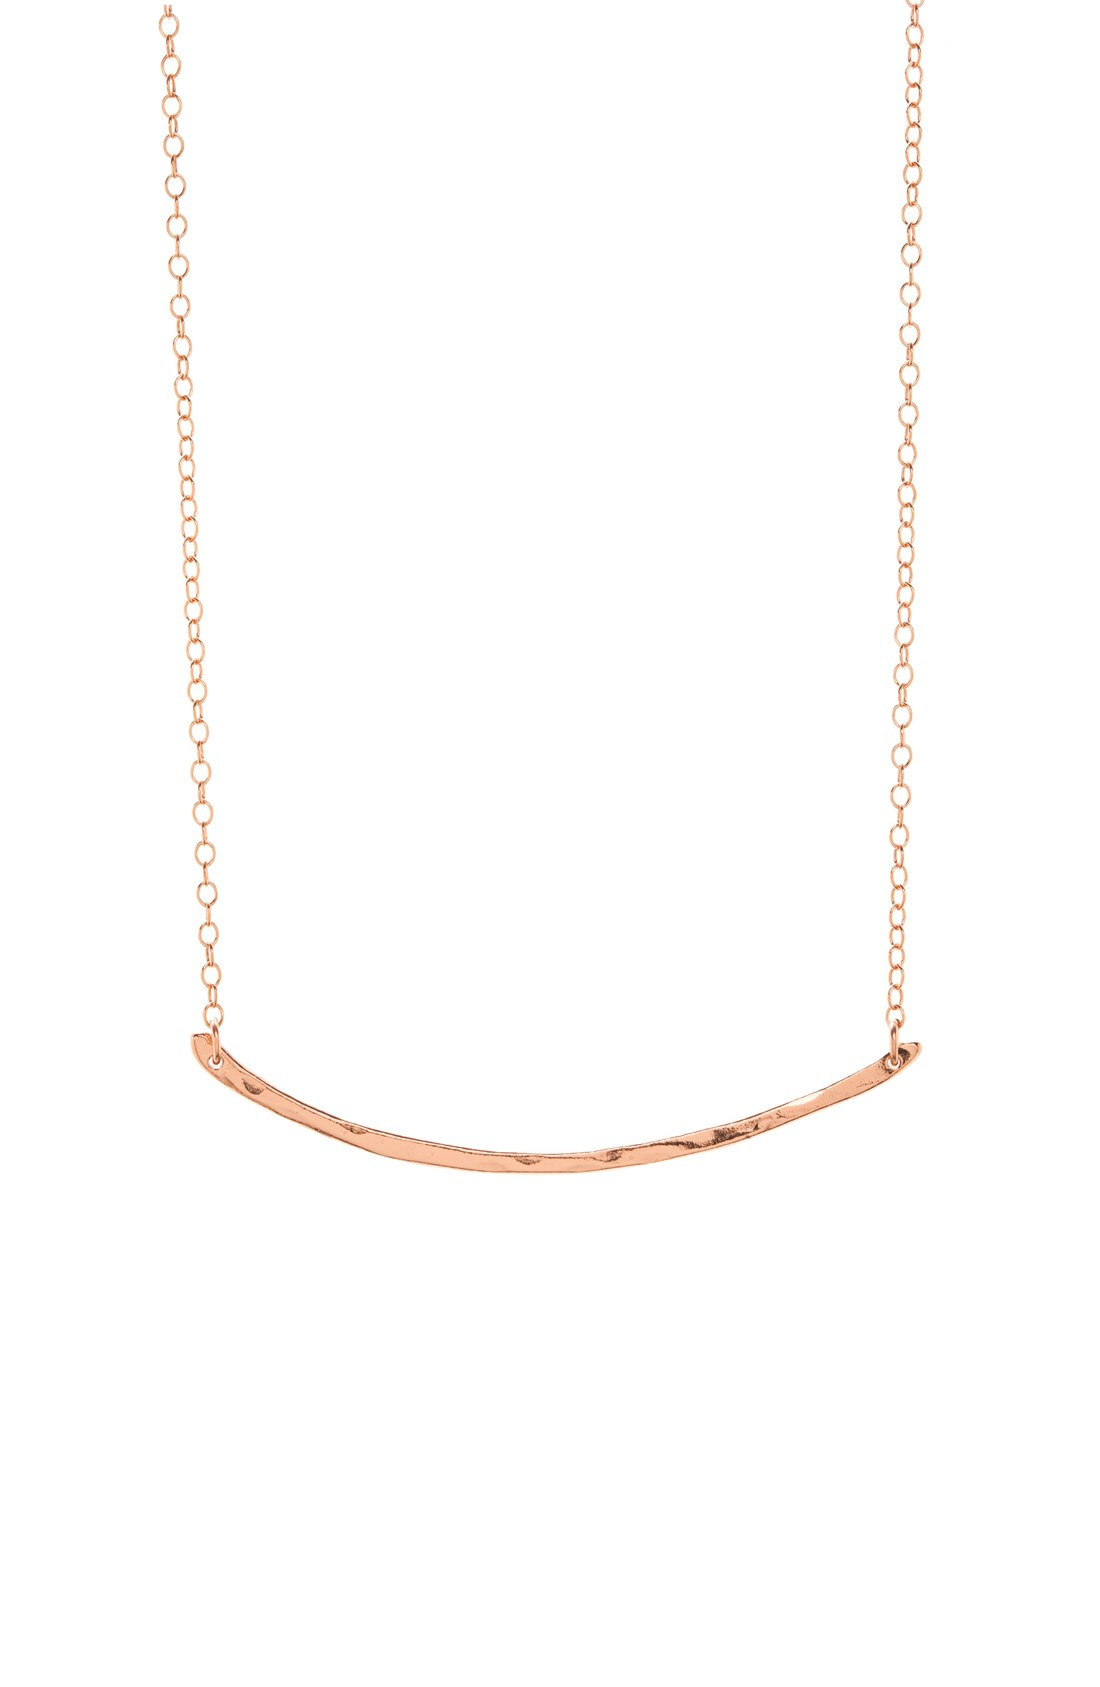 Gorjana t bar necklace